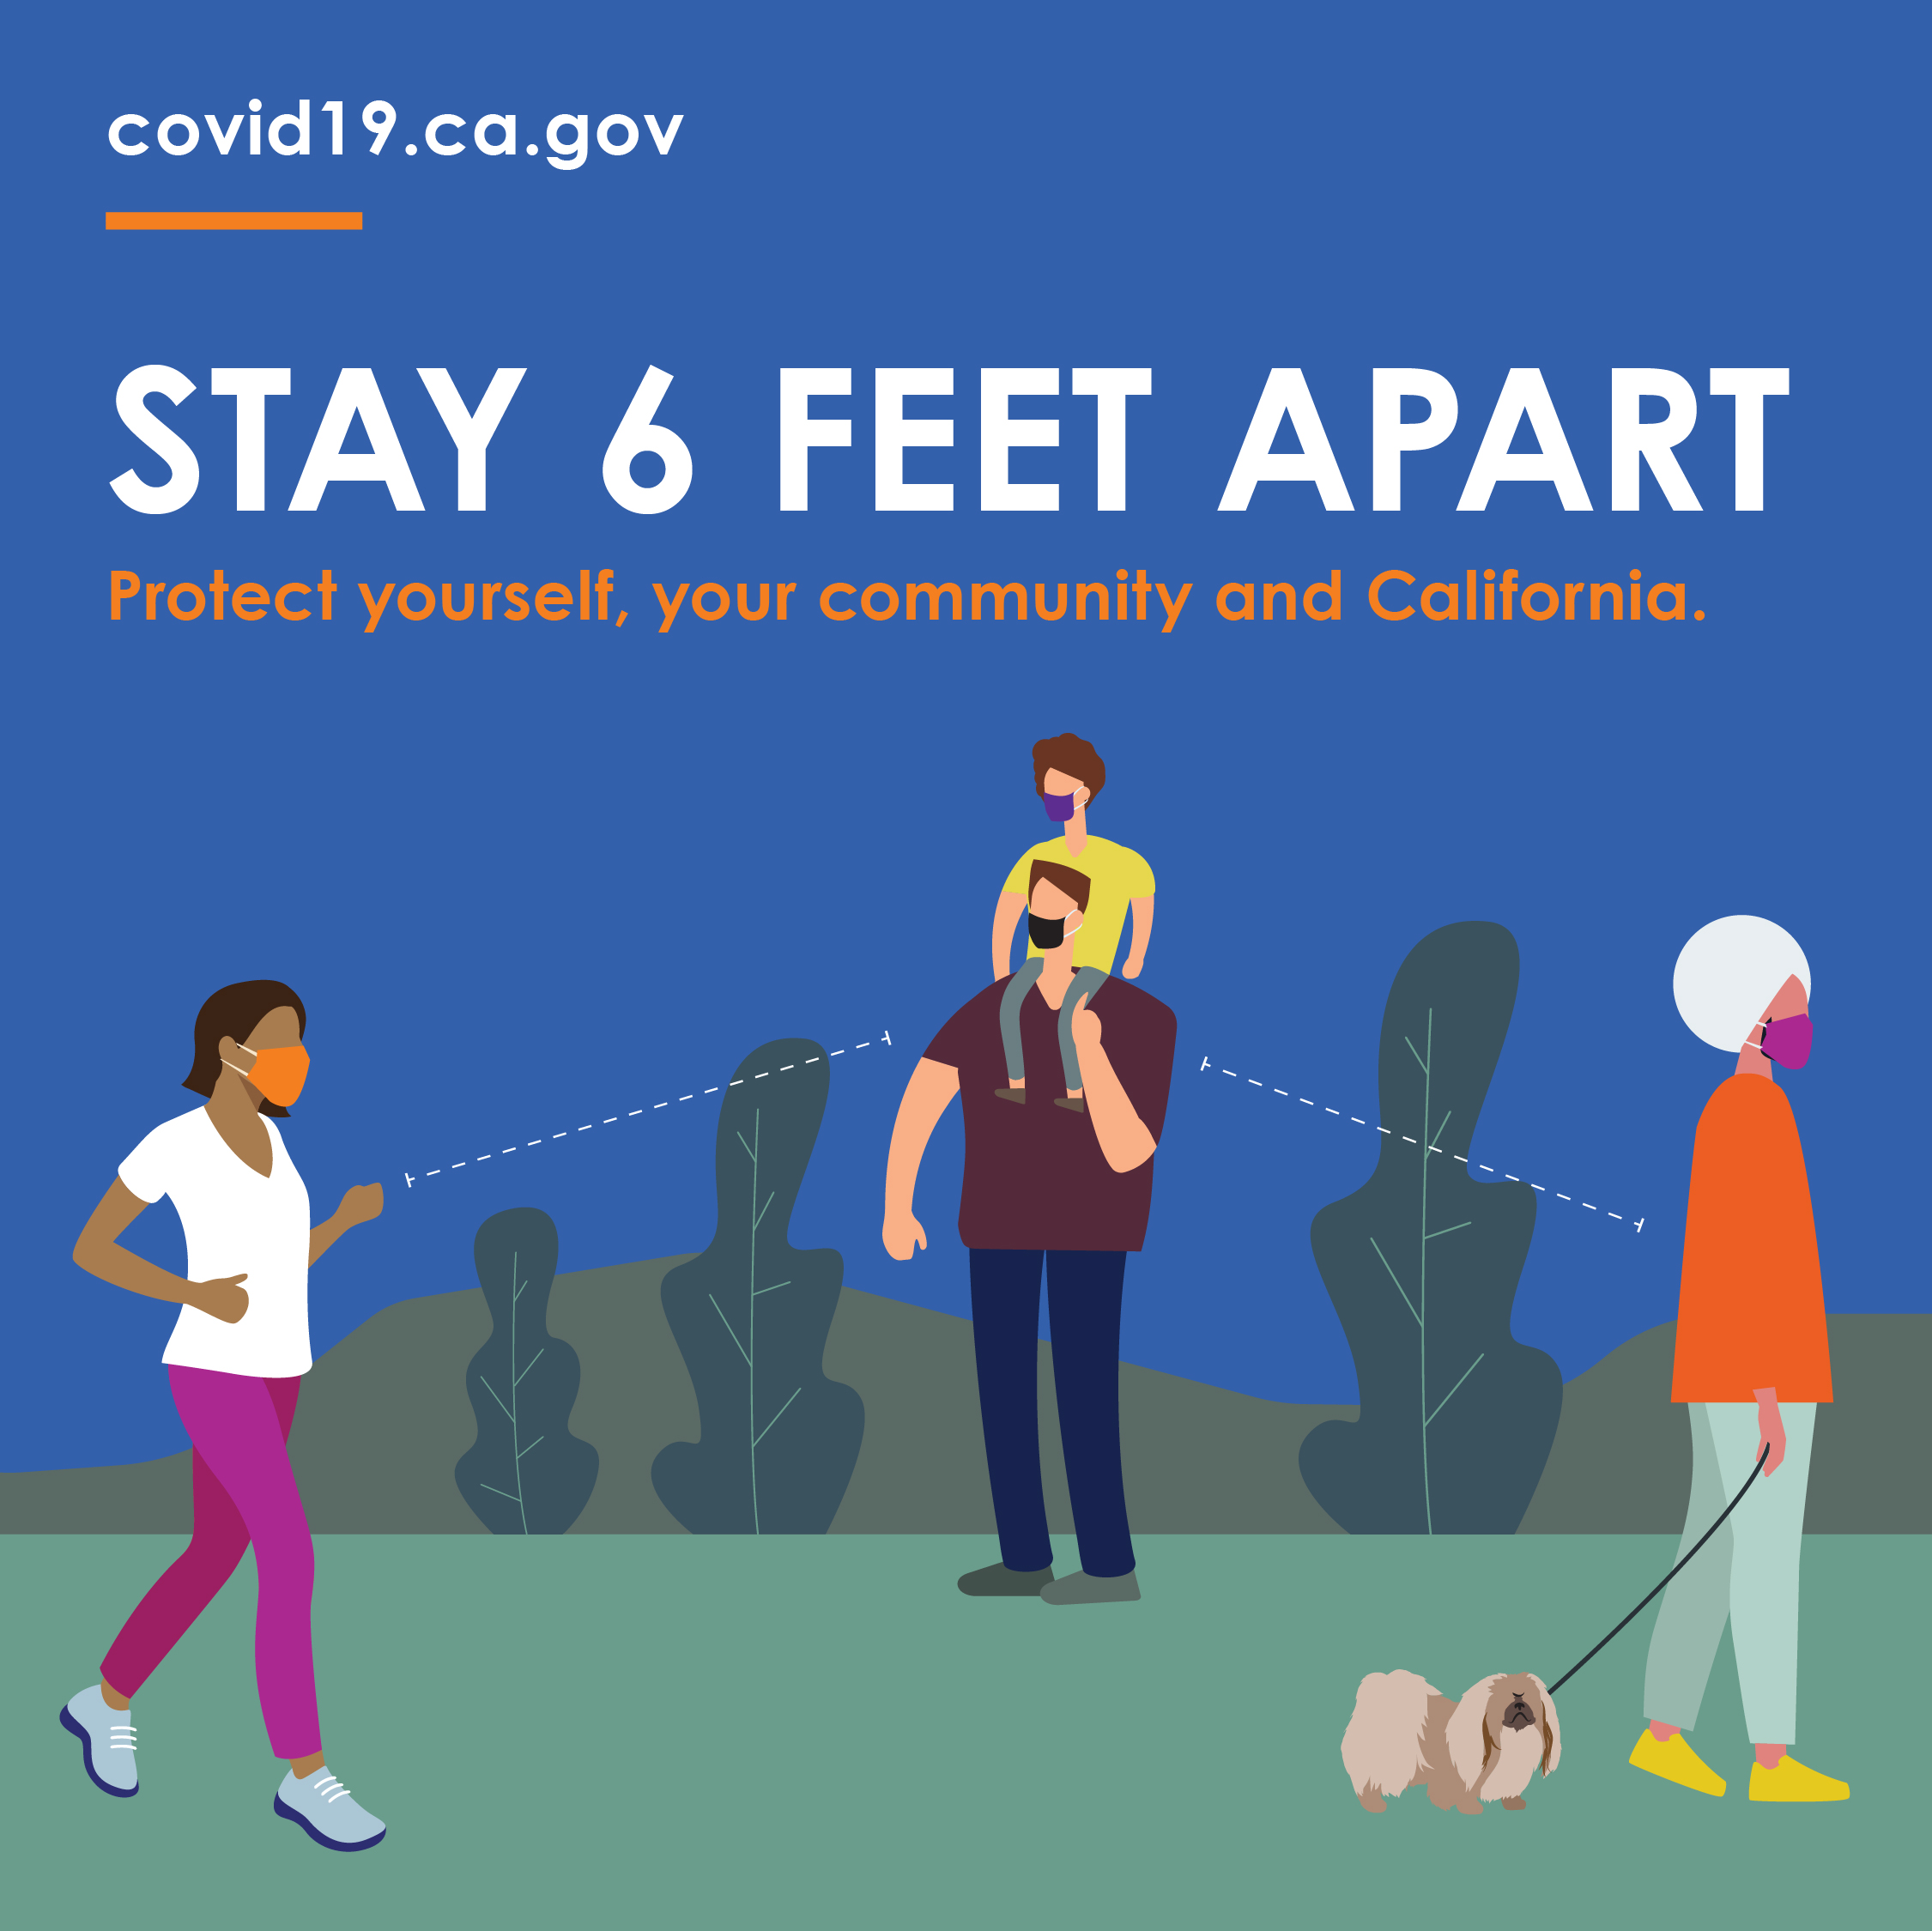 Stay 6 feet apart. Protect yourself, your community and California.